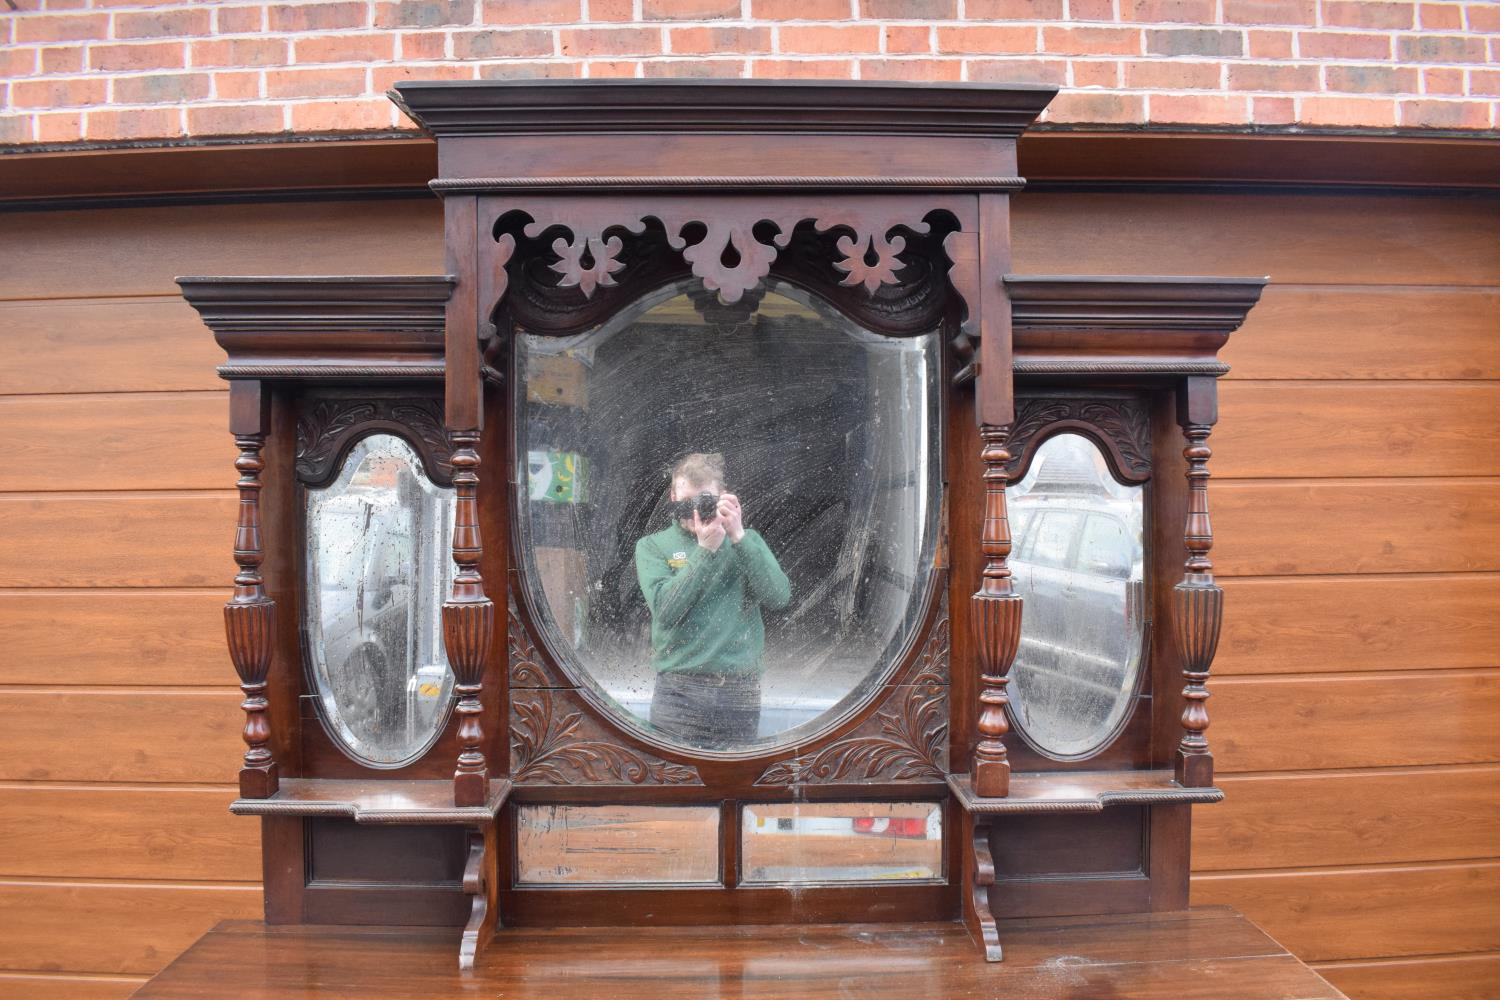 Edwardian large carved oak mirror backed sideboard. 178 x 64 x 224cm height. In good functional - Image 2 of 18